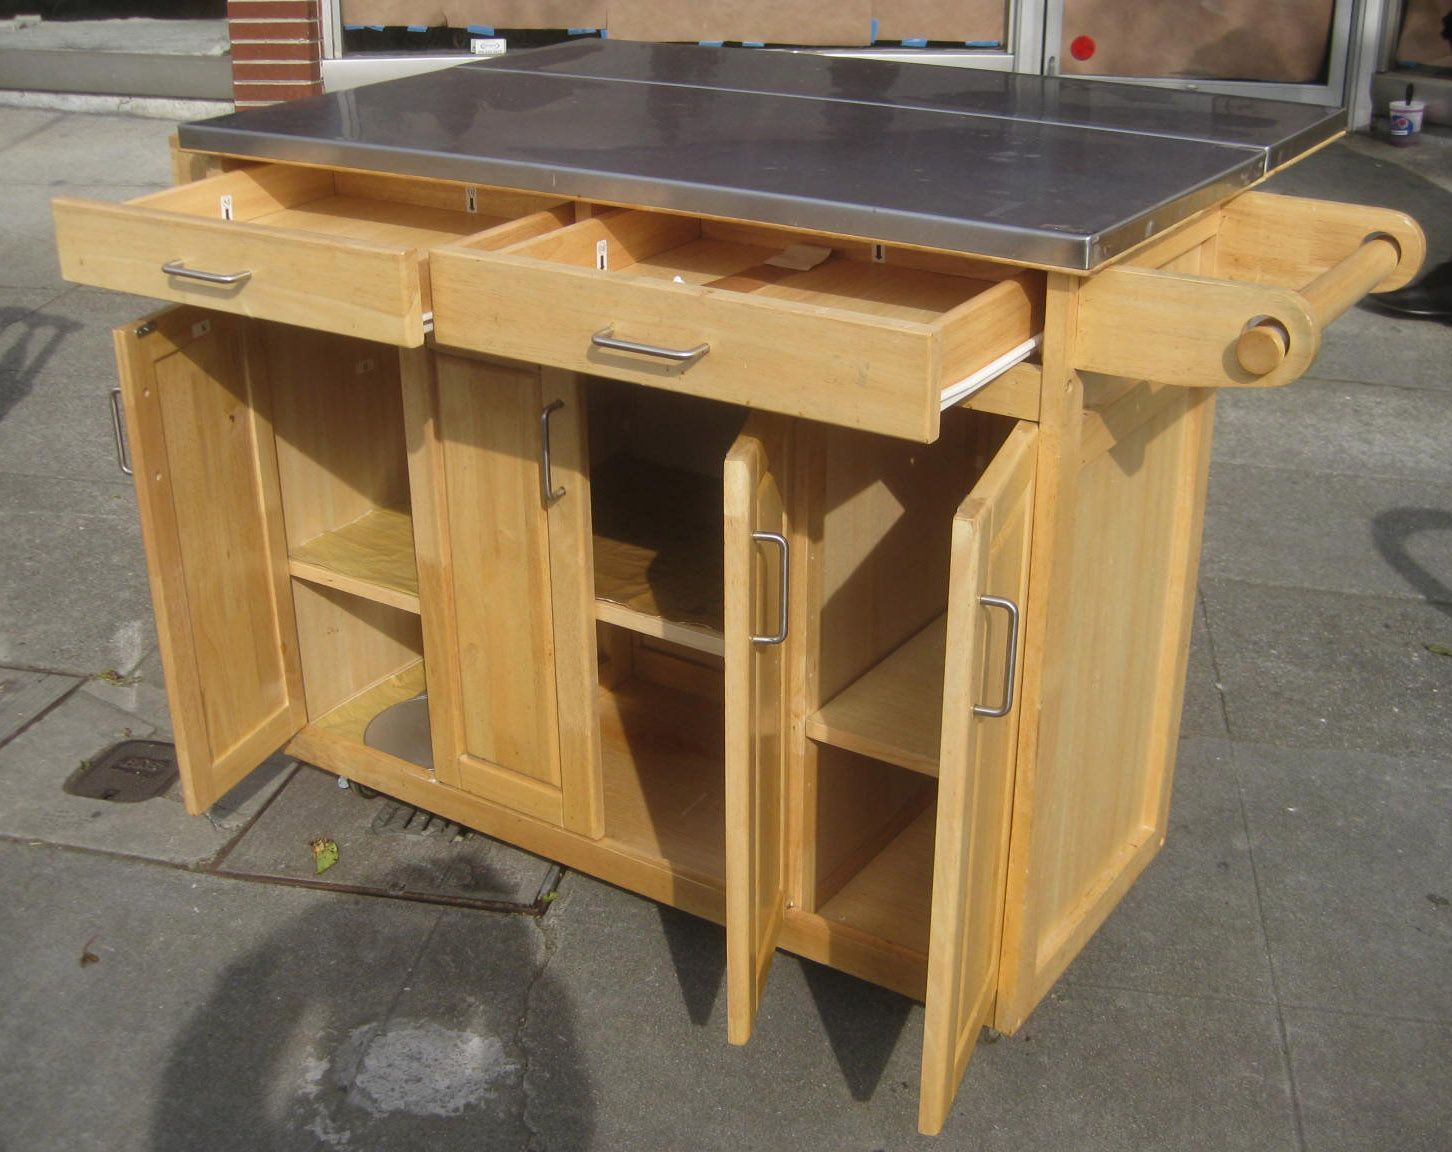 Uhuru furniture collectibles sold mobile kitchen cute in